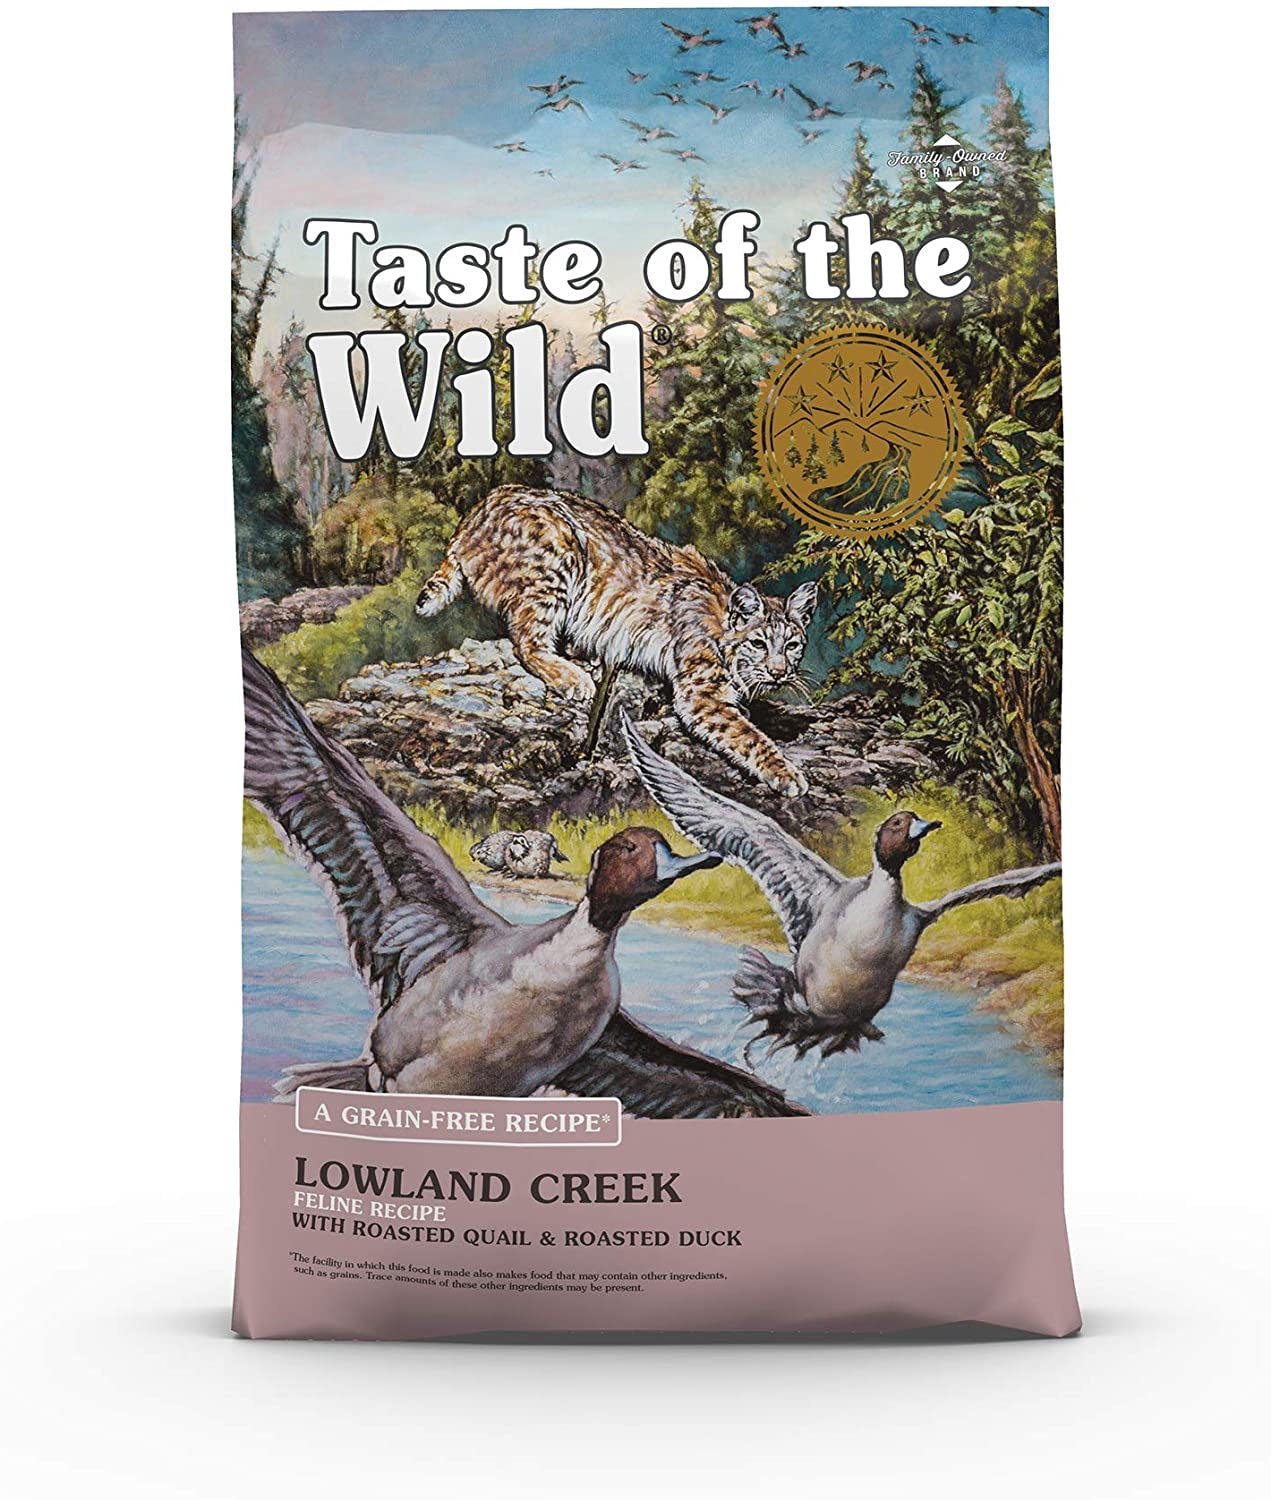 Taste of the Wild - Lowland Creek Feline (cat)